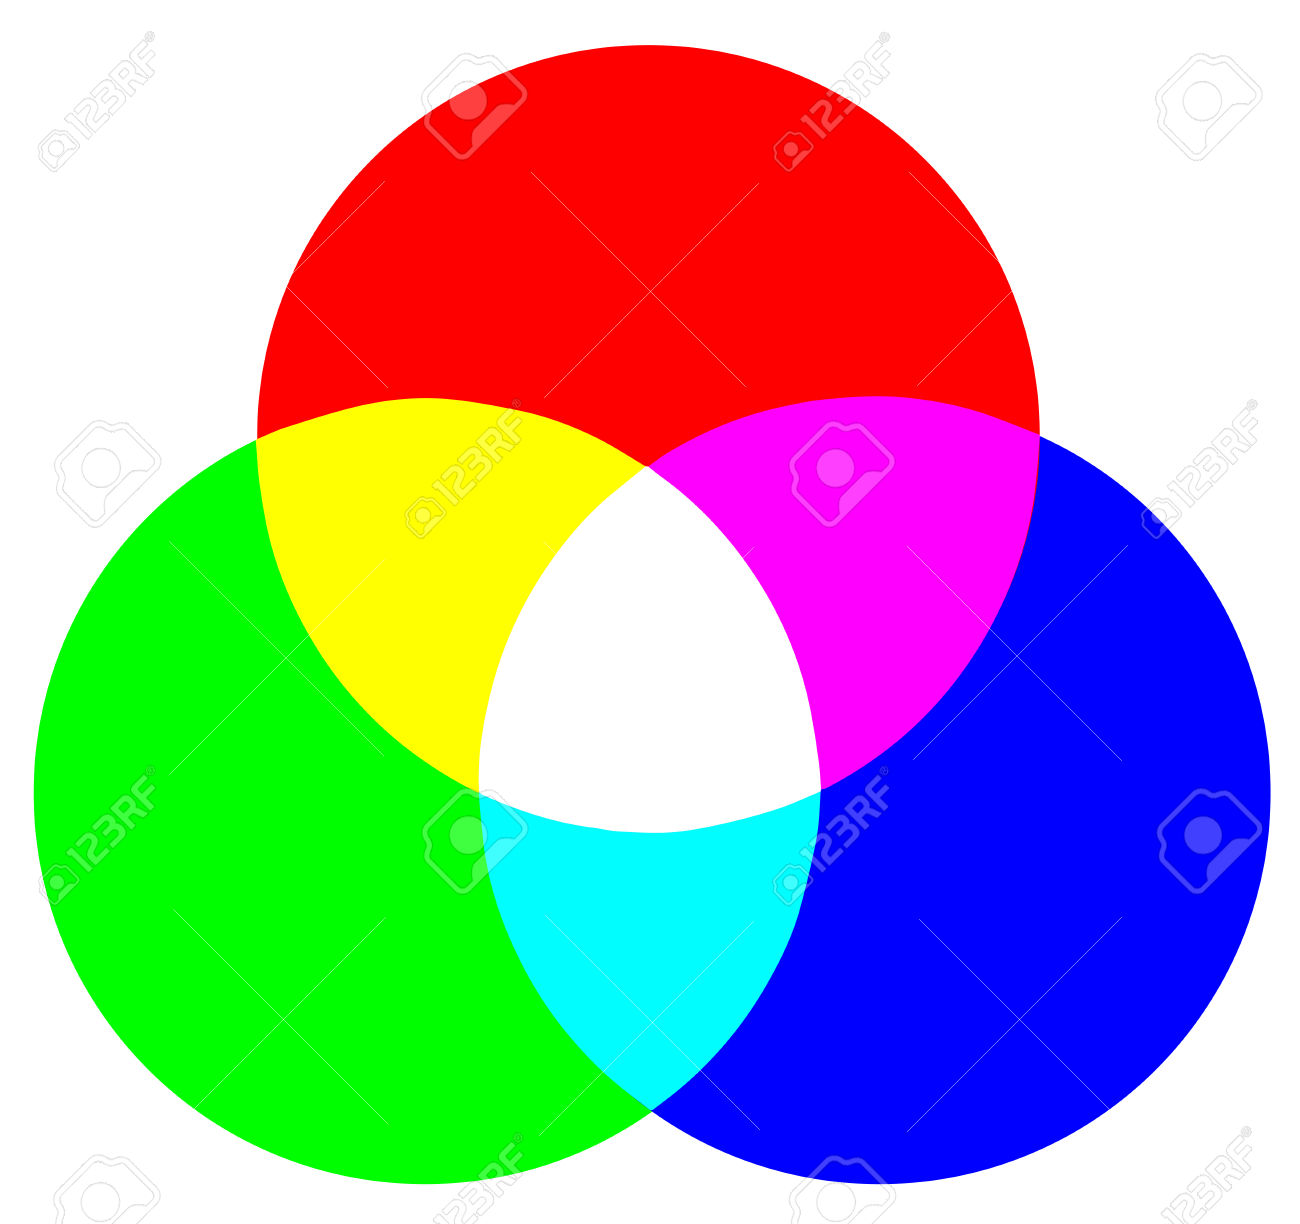 Red Green And Blue Giving The 3 Colers In The RGB Color Model.